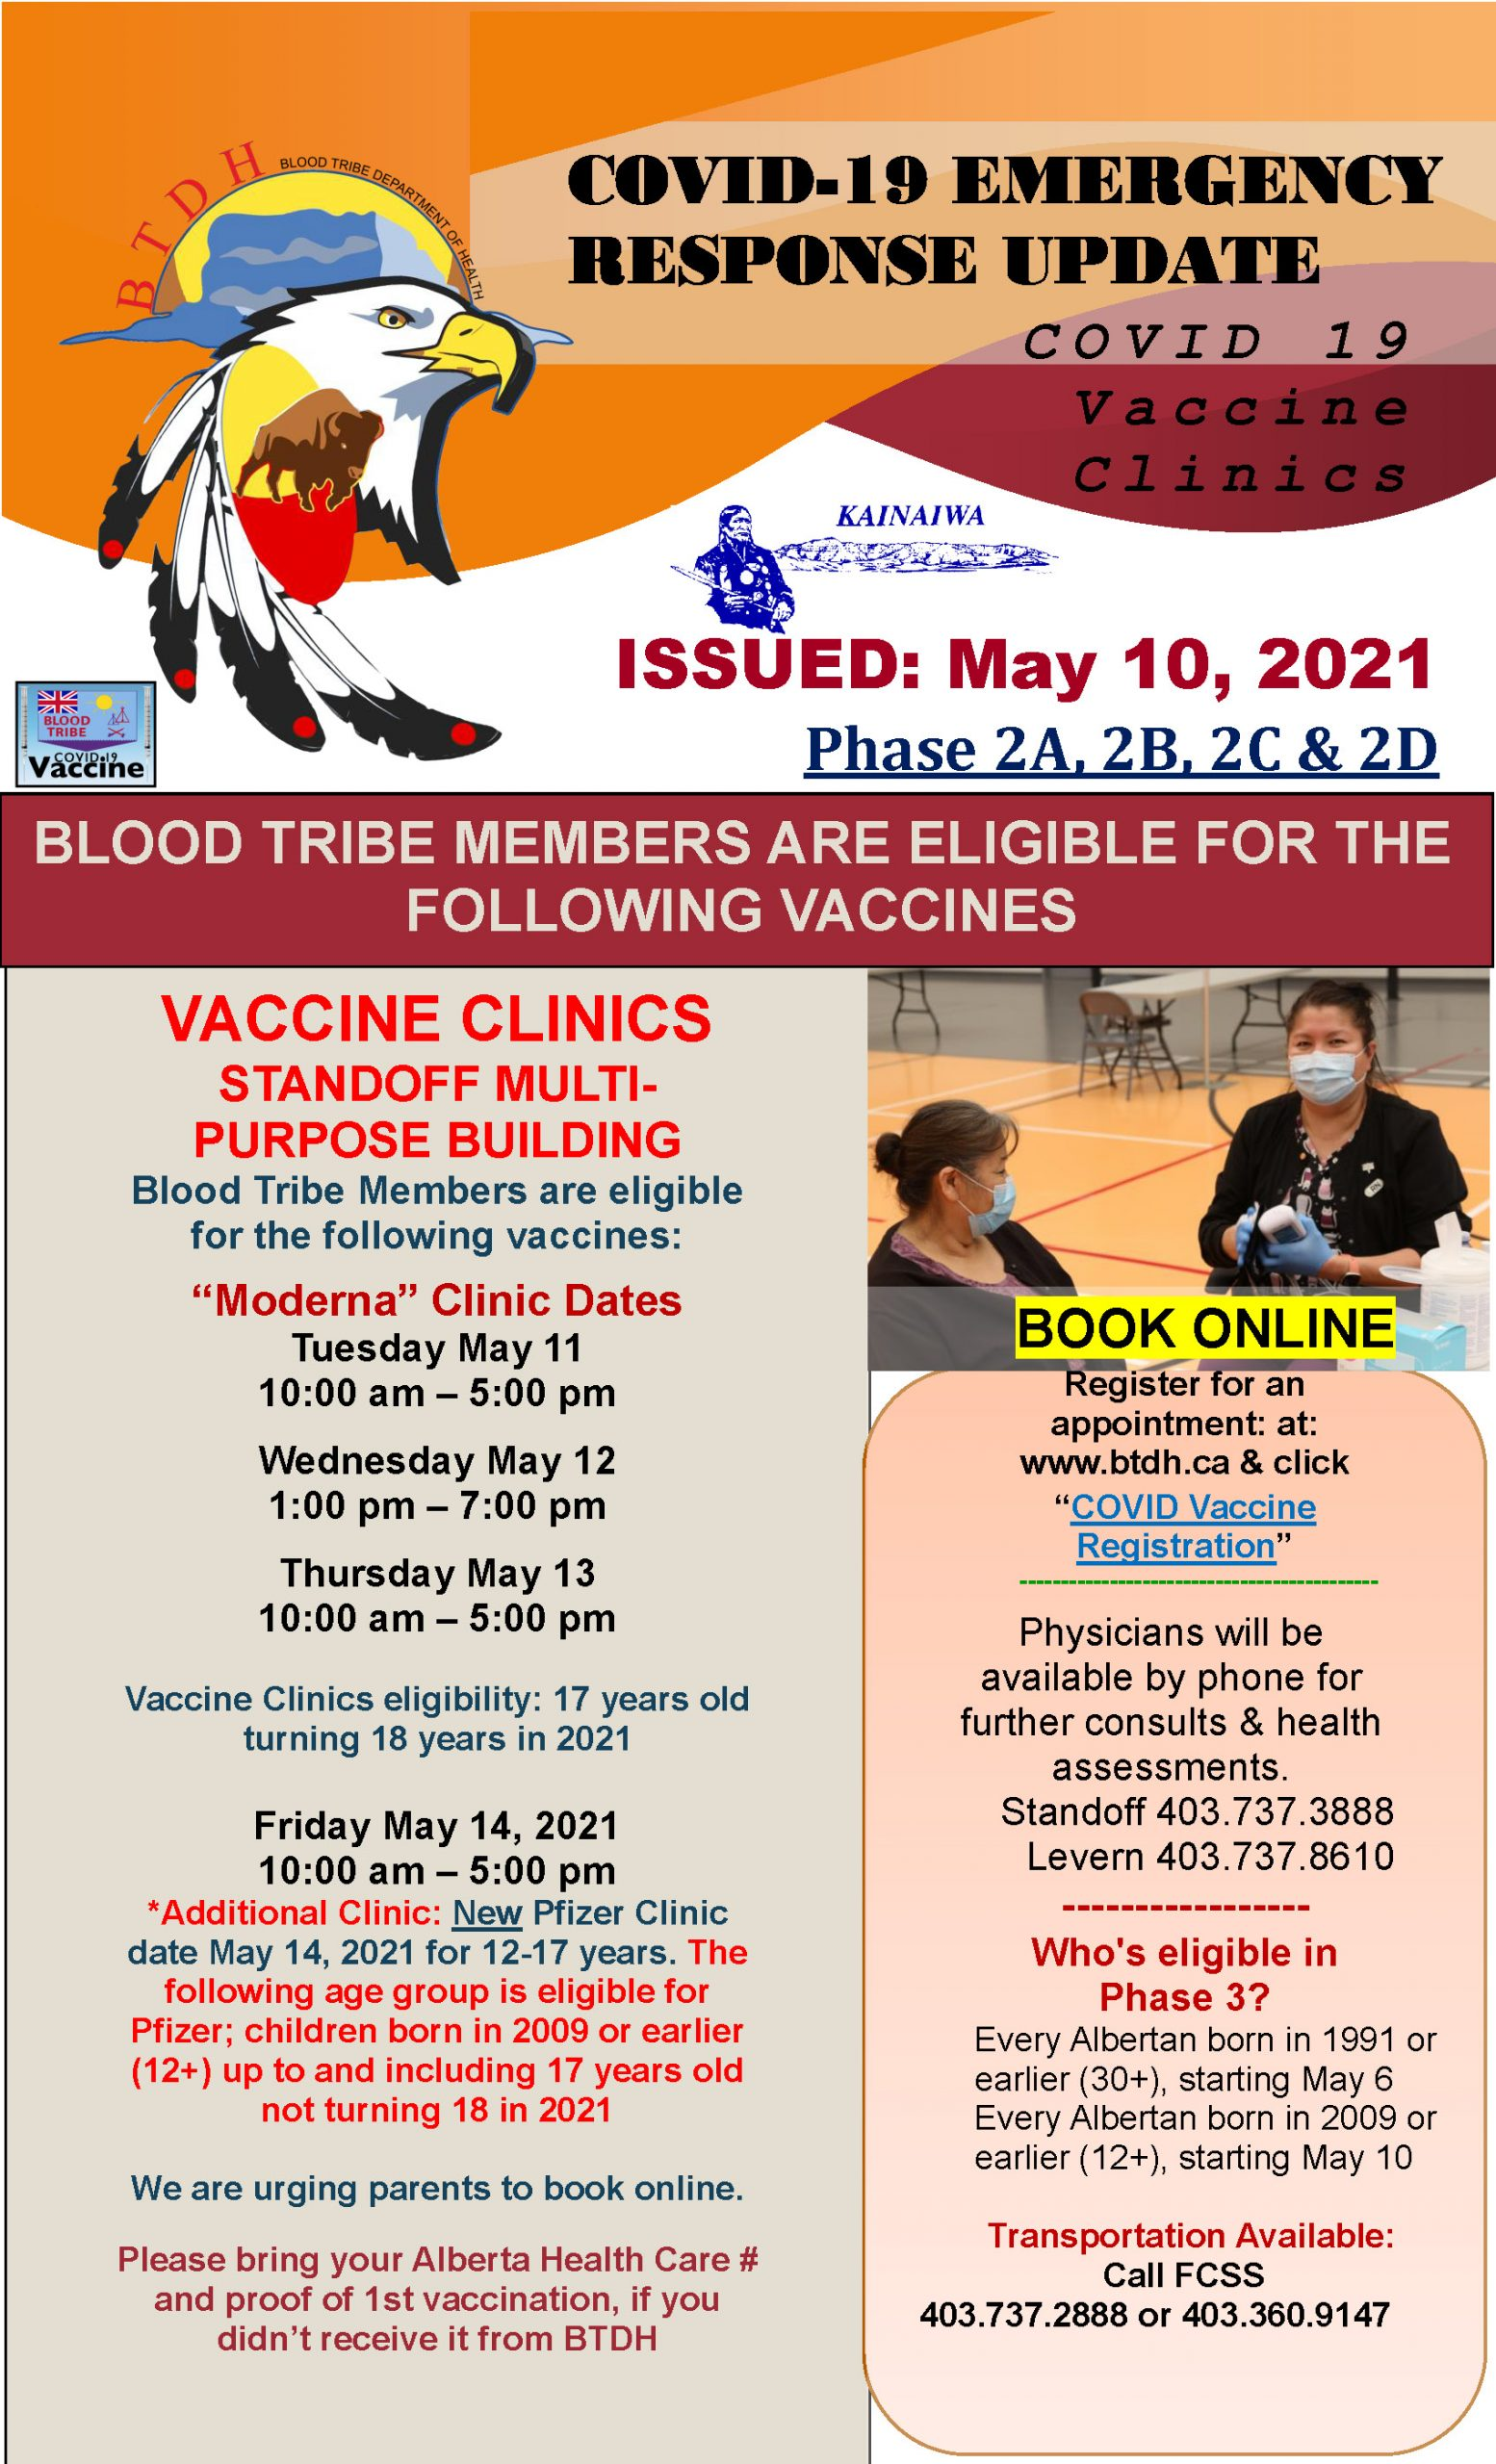 COVID-19 Vaccine Clinic Update - May 10, 2021